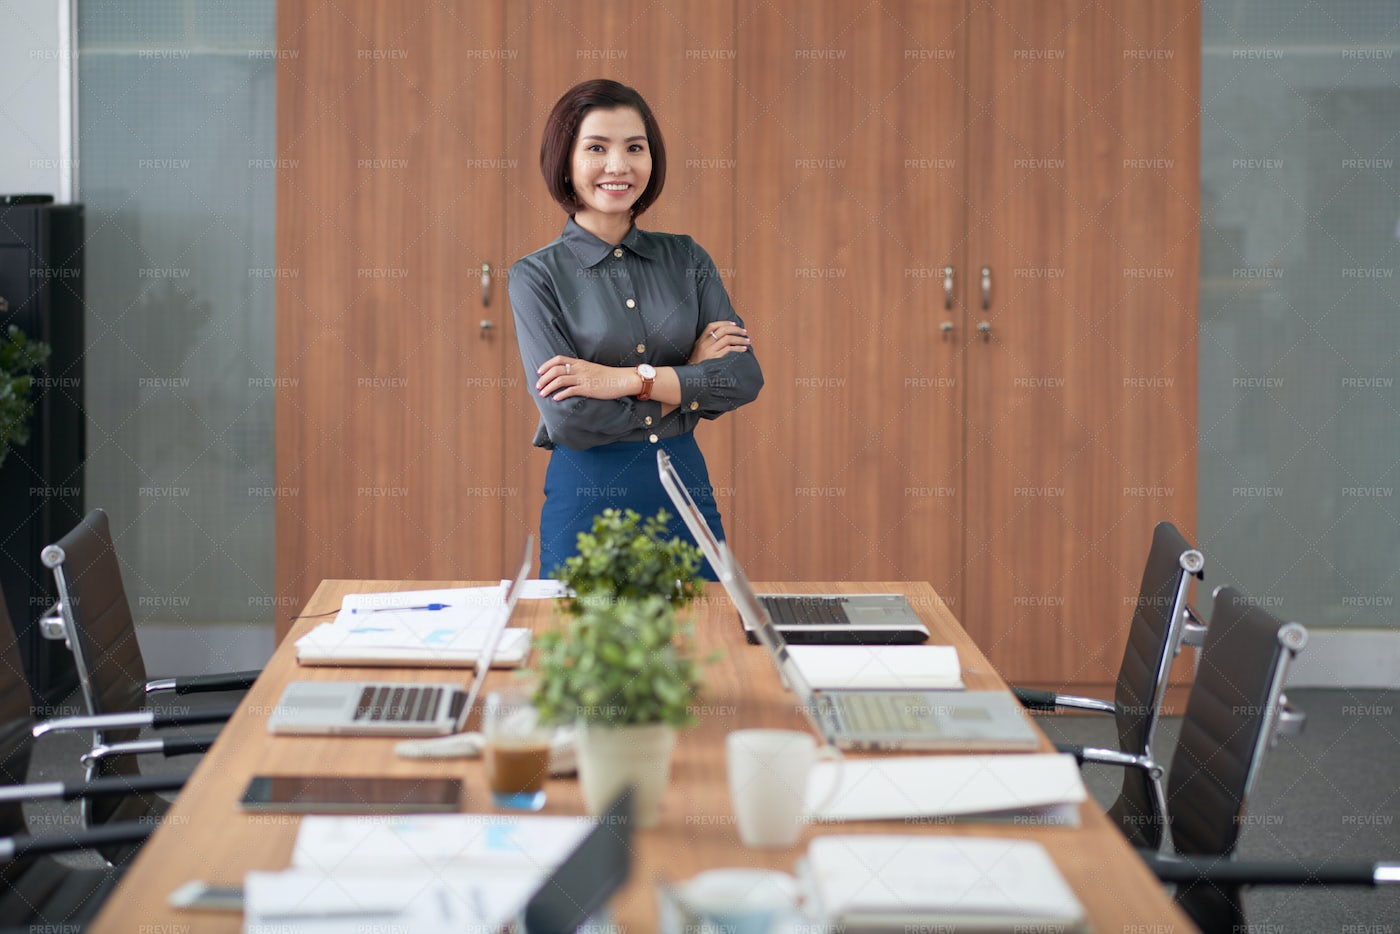 Female Executive Standing In Boardroom: Stock Photos